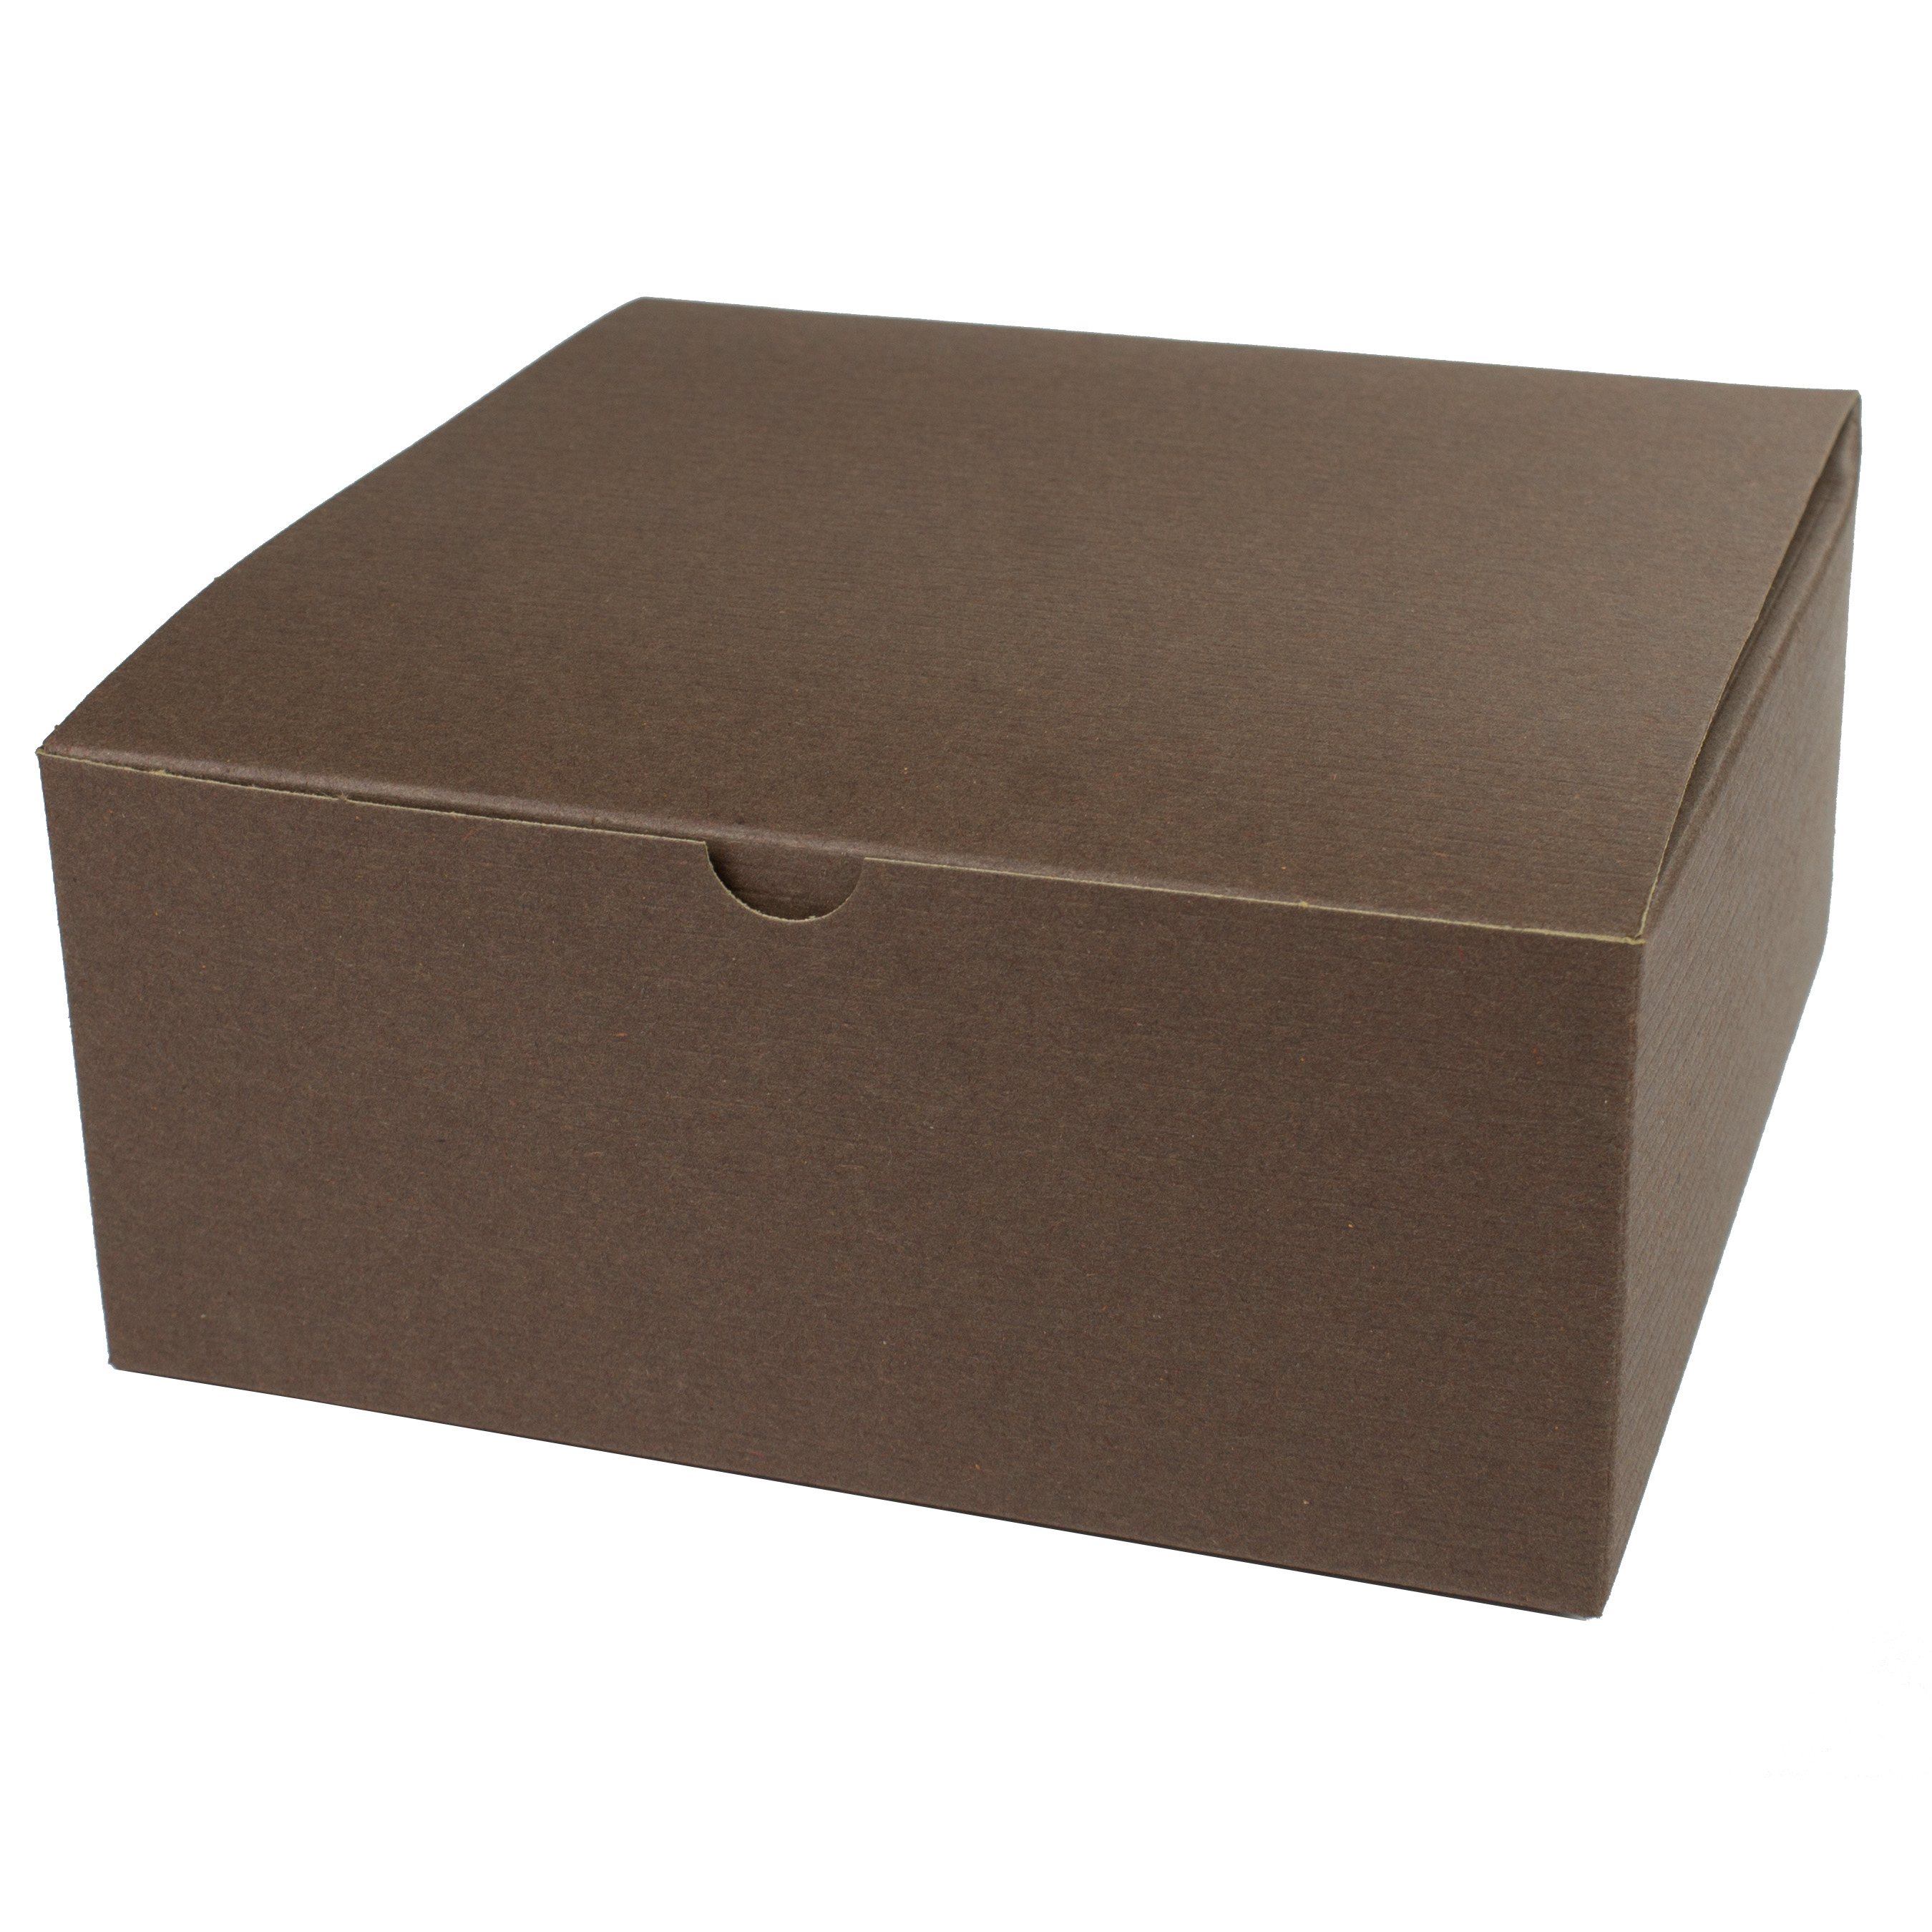 8 x 8 x 3.5 COCOA TINTED TUCK-TOP GIFT BOXES